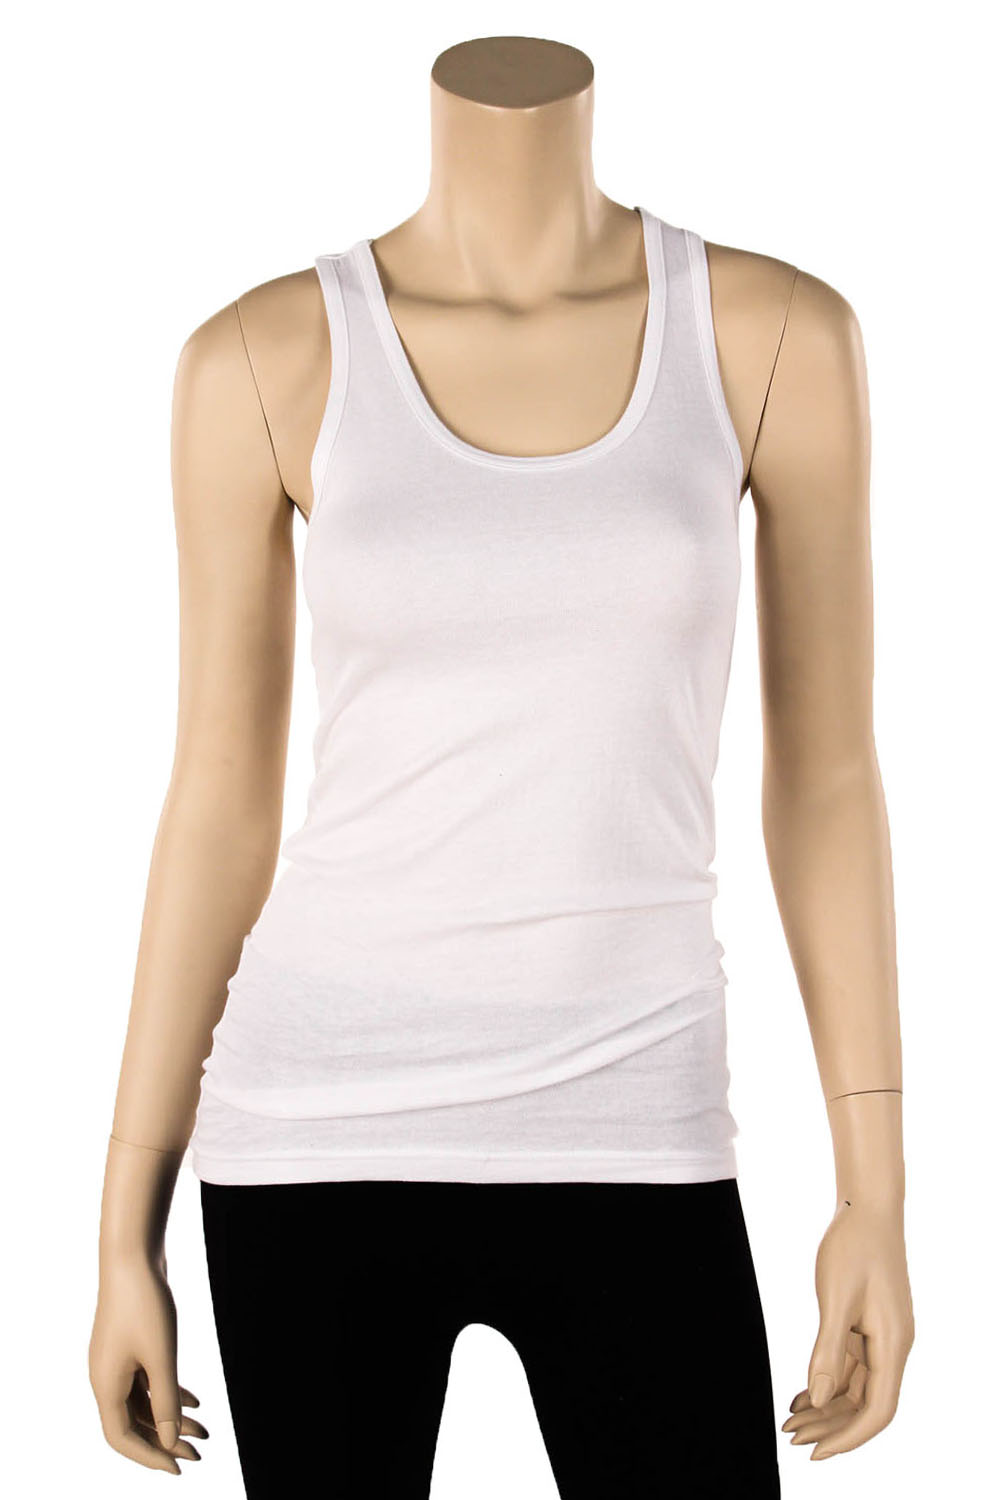 Womens 100% Cotton Racerback Tank Top Basic Cami Solid Tee Shirt ...